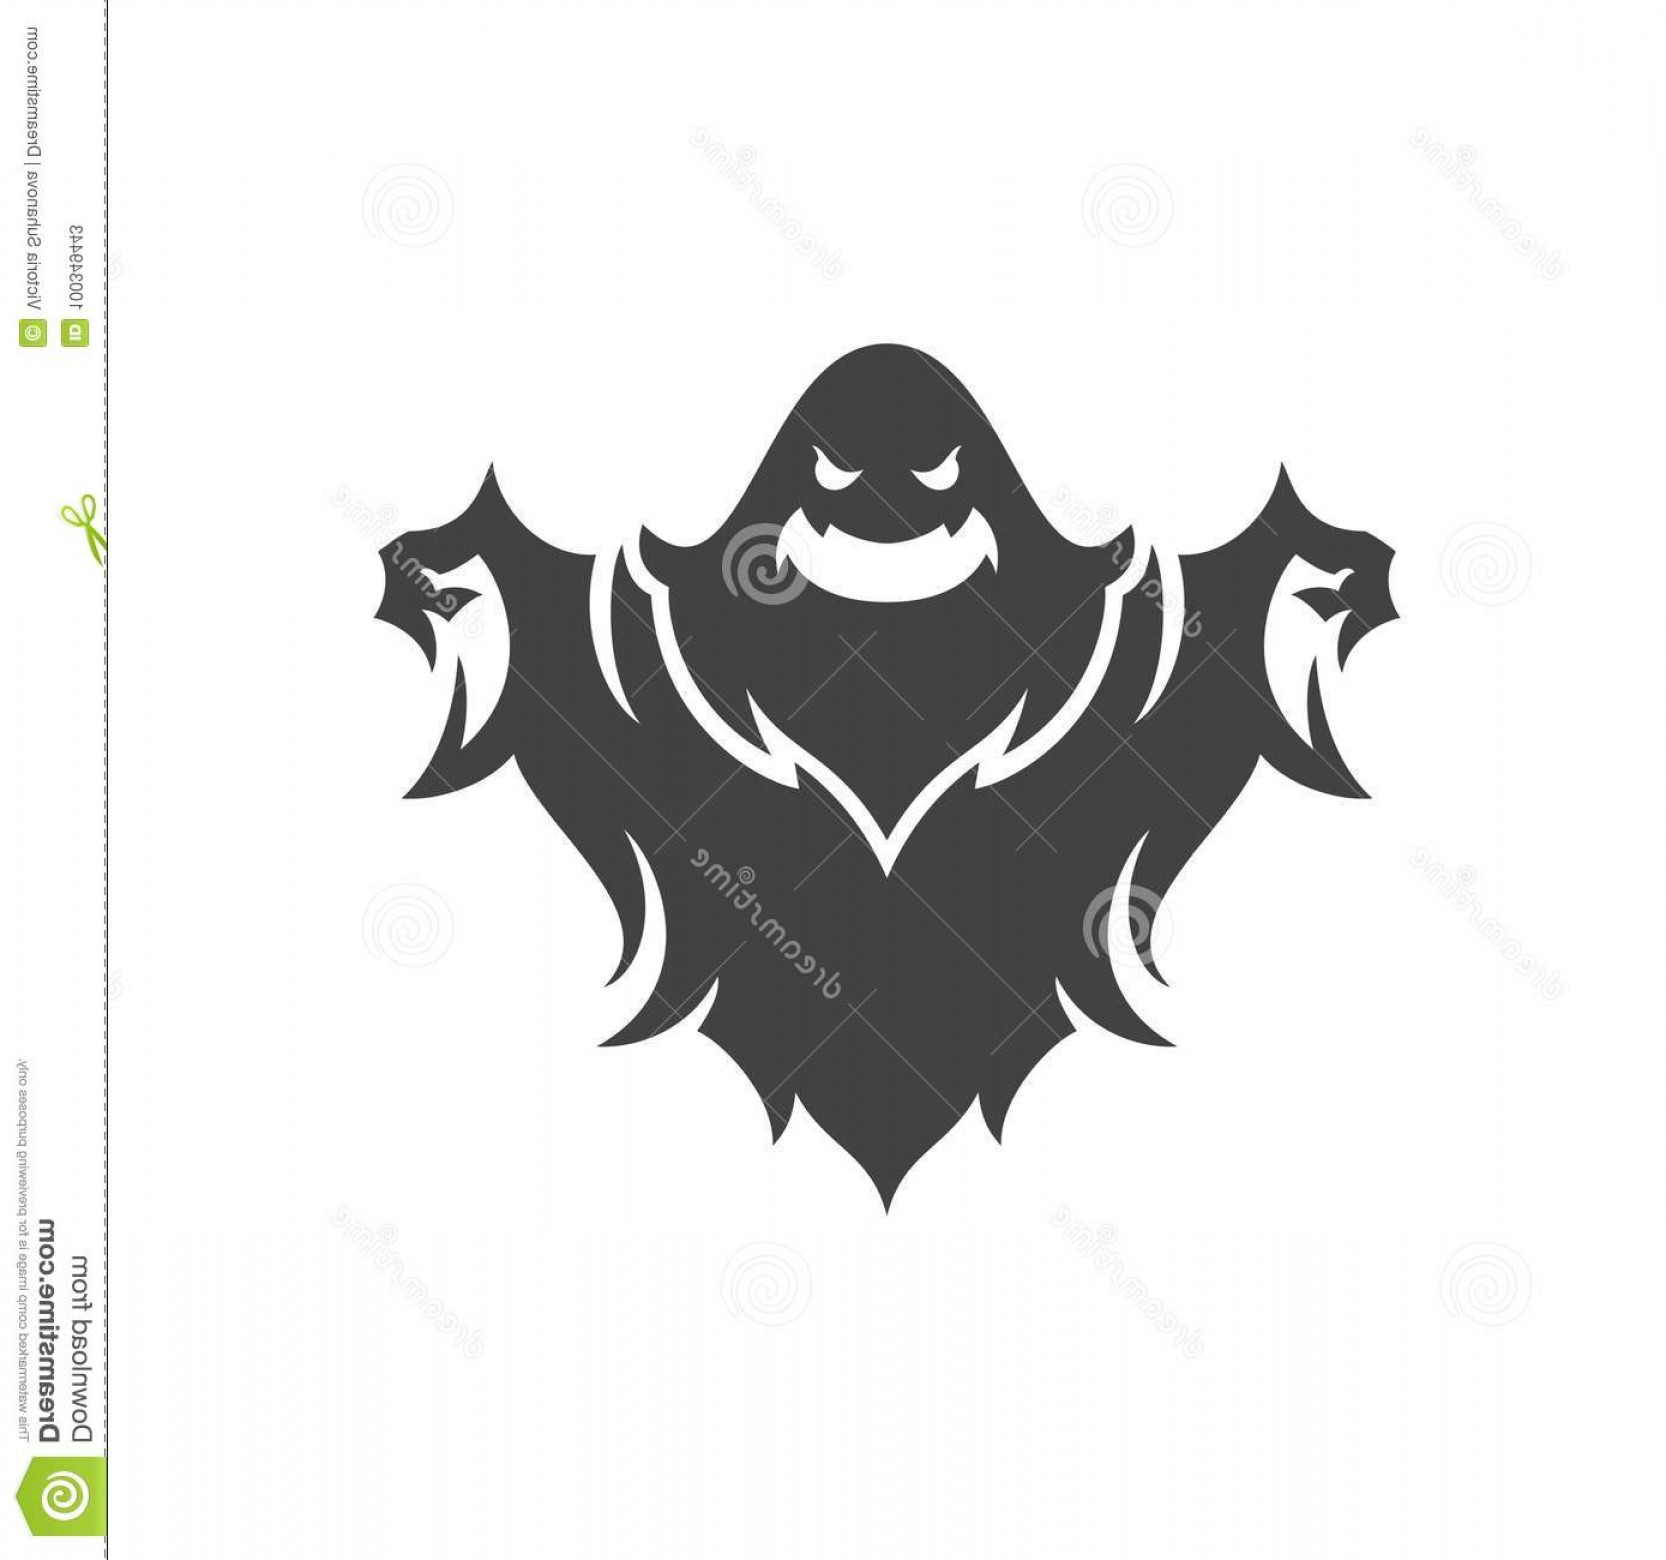 Ghost Vector Black: Halloween Scary Ghost Isolated White Vector Illustration Image